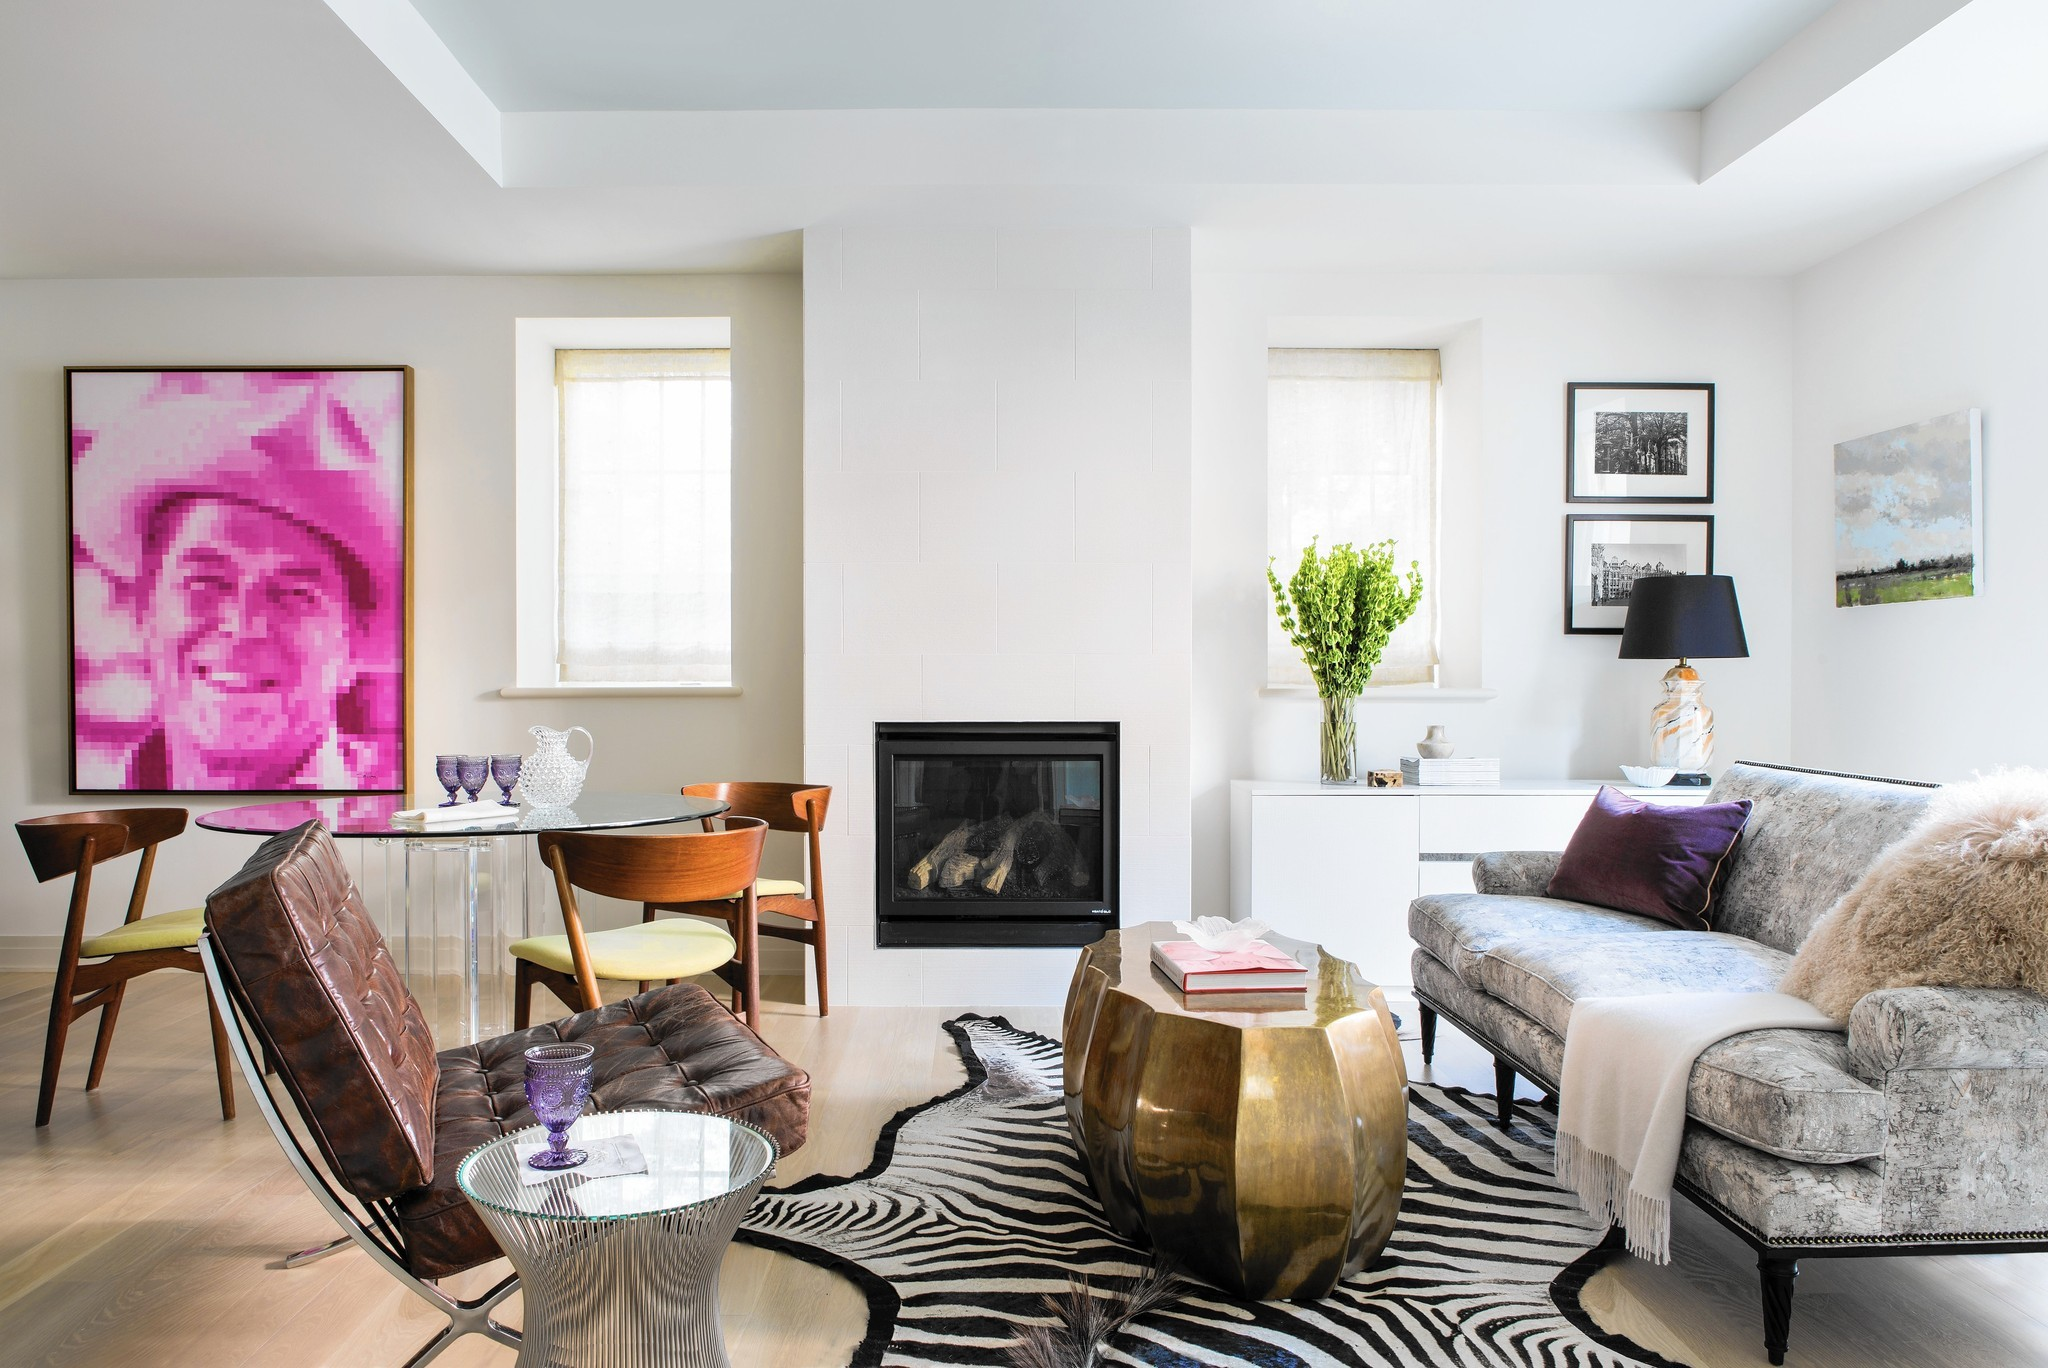 Millennial decor: High style, low budget - Chicago Tribune